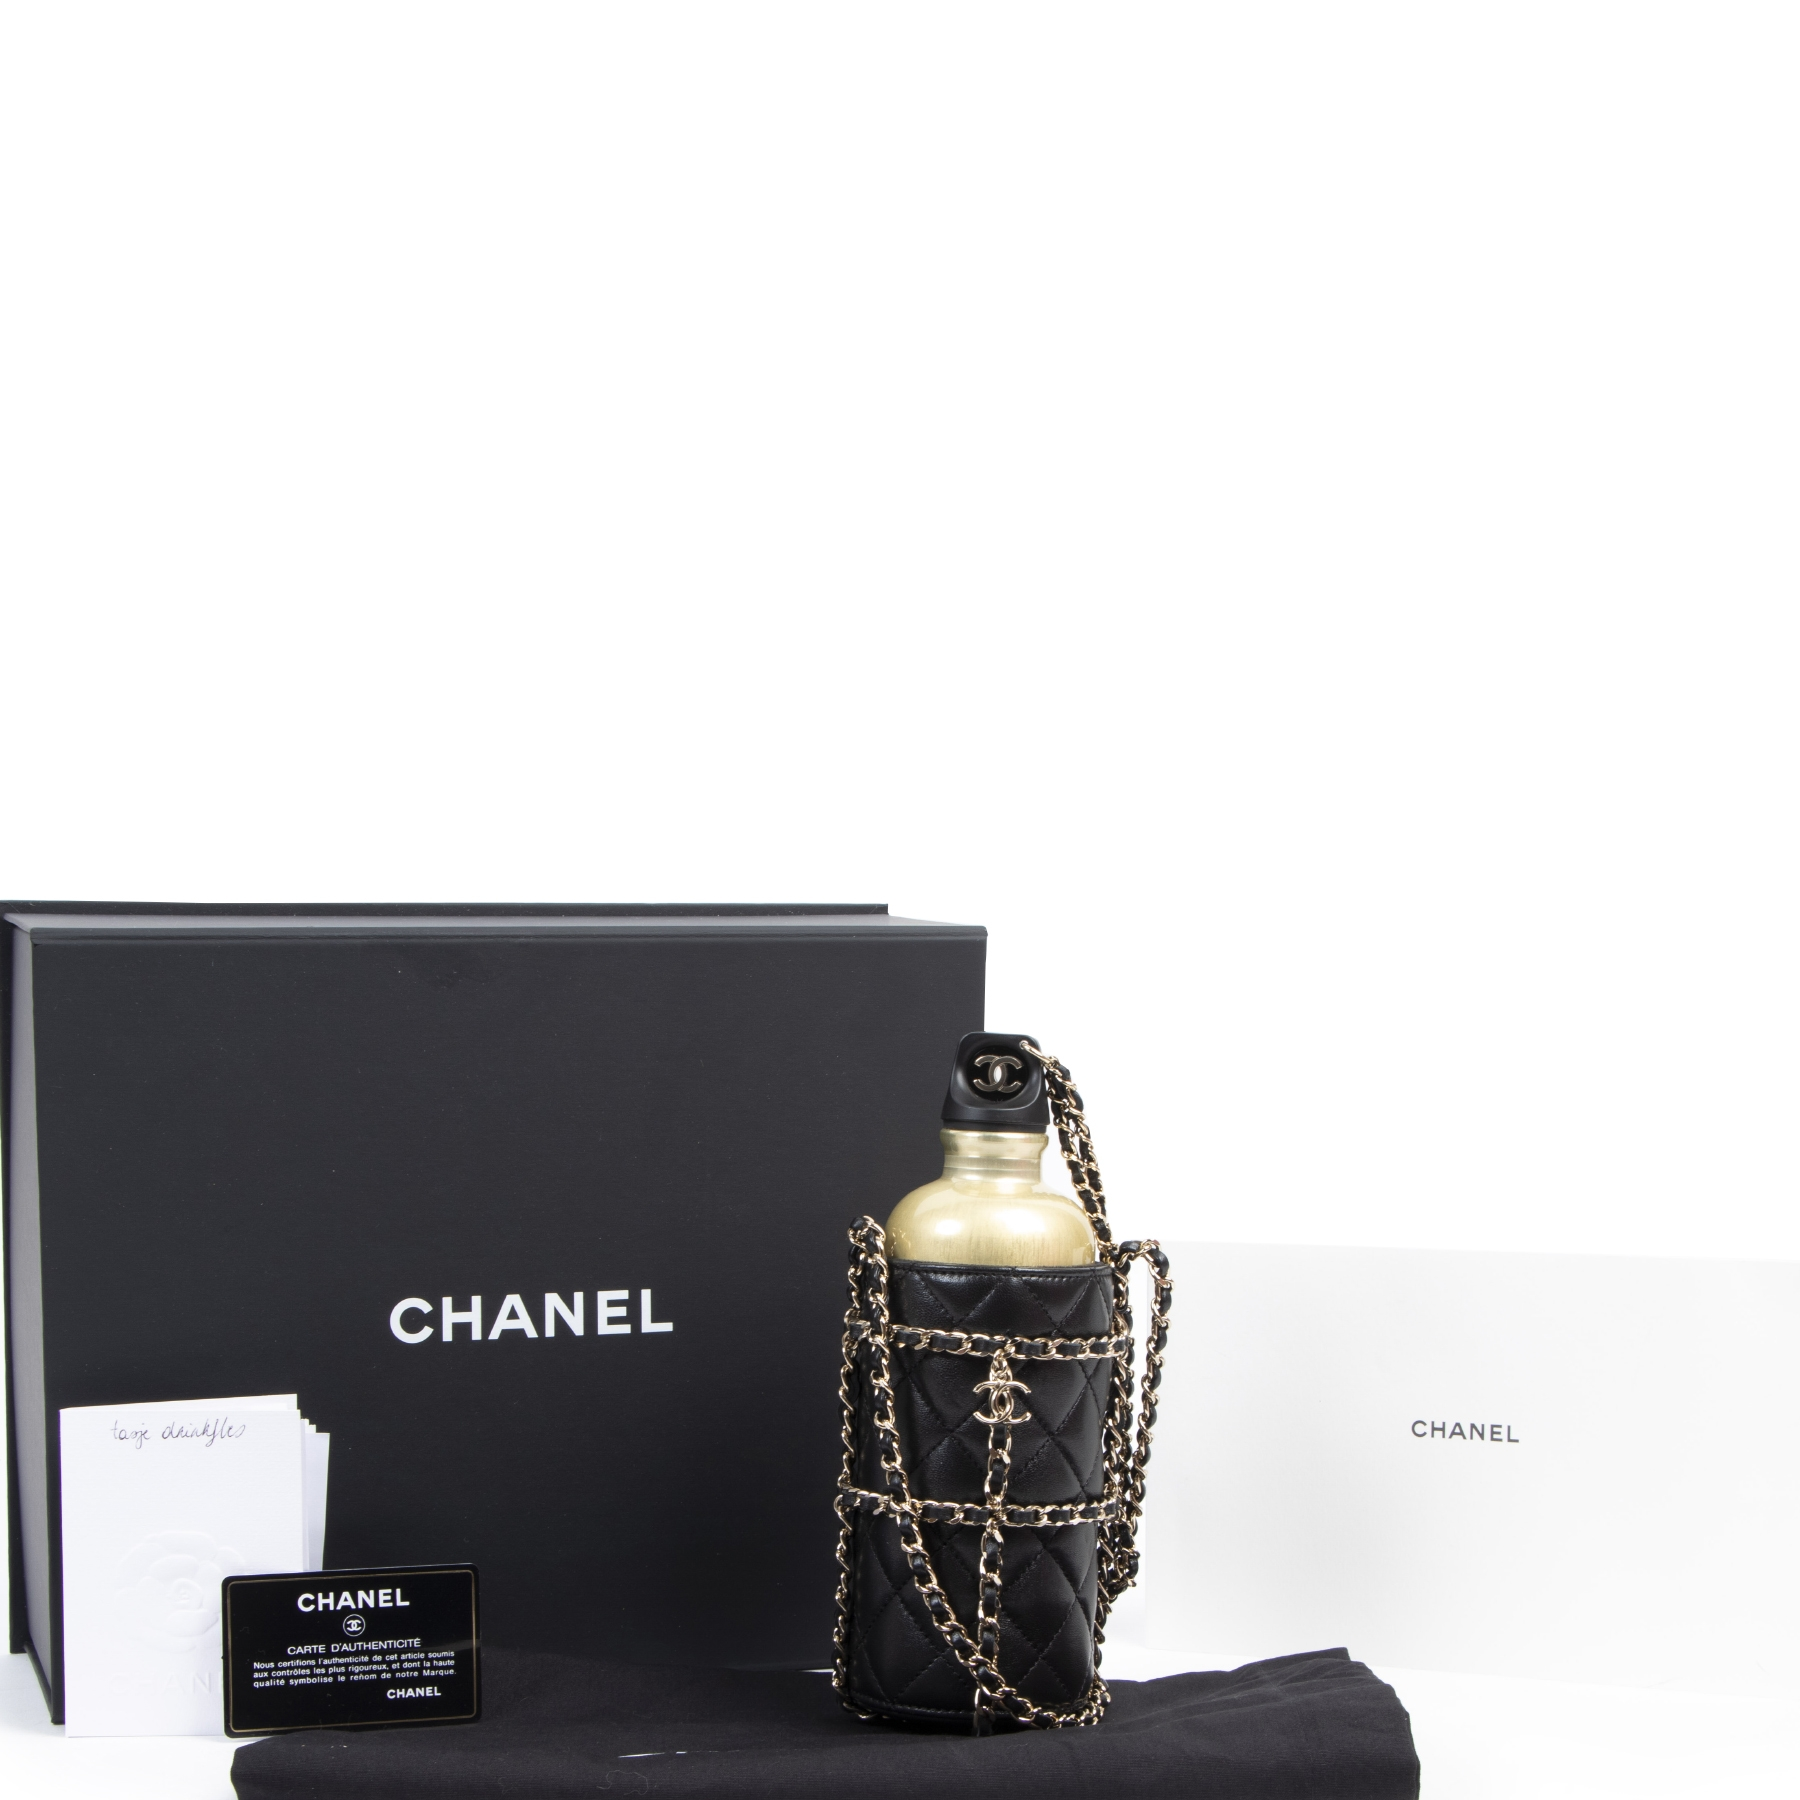 Chanel Black Gold Leather Bottle Bag for the best price at Labellov